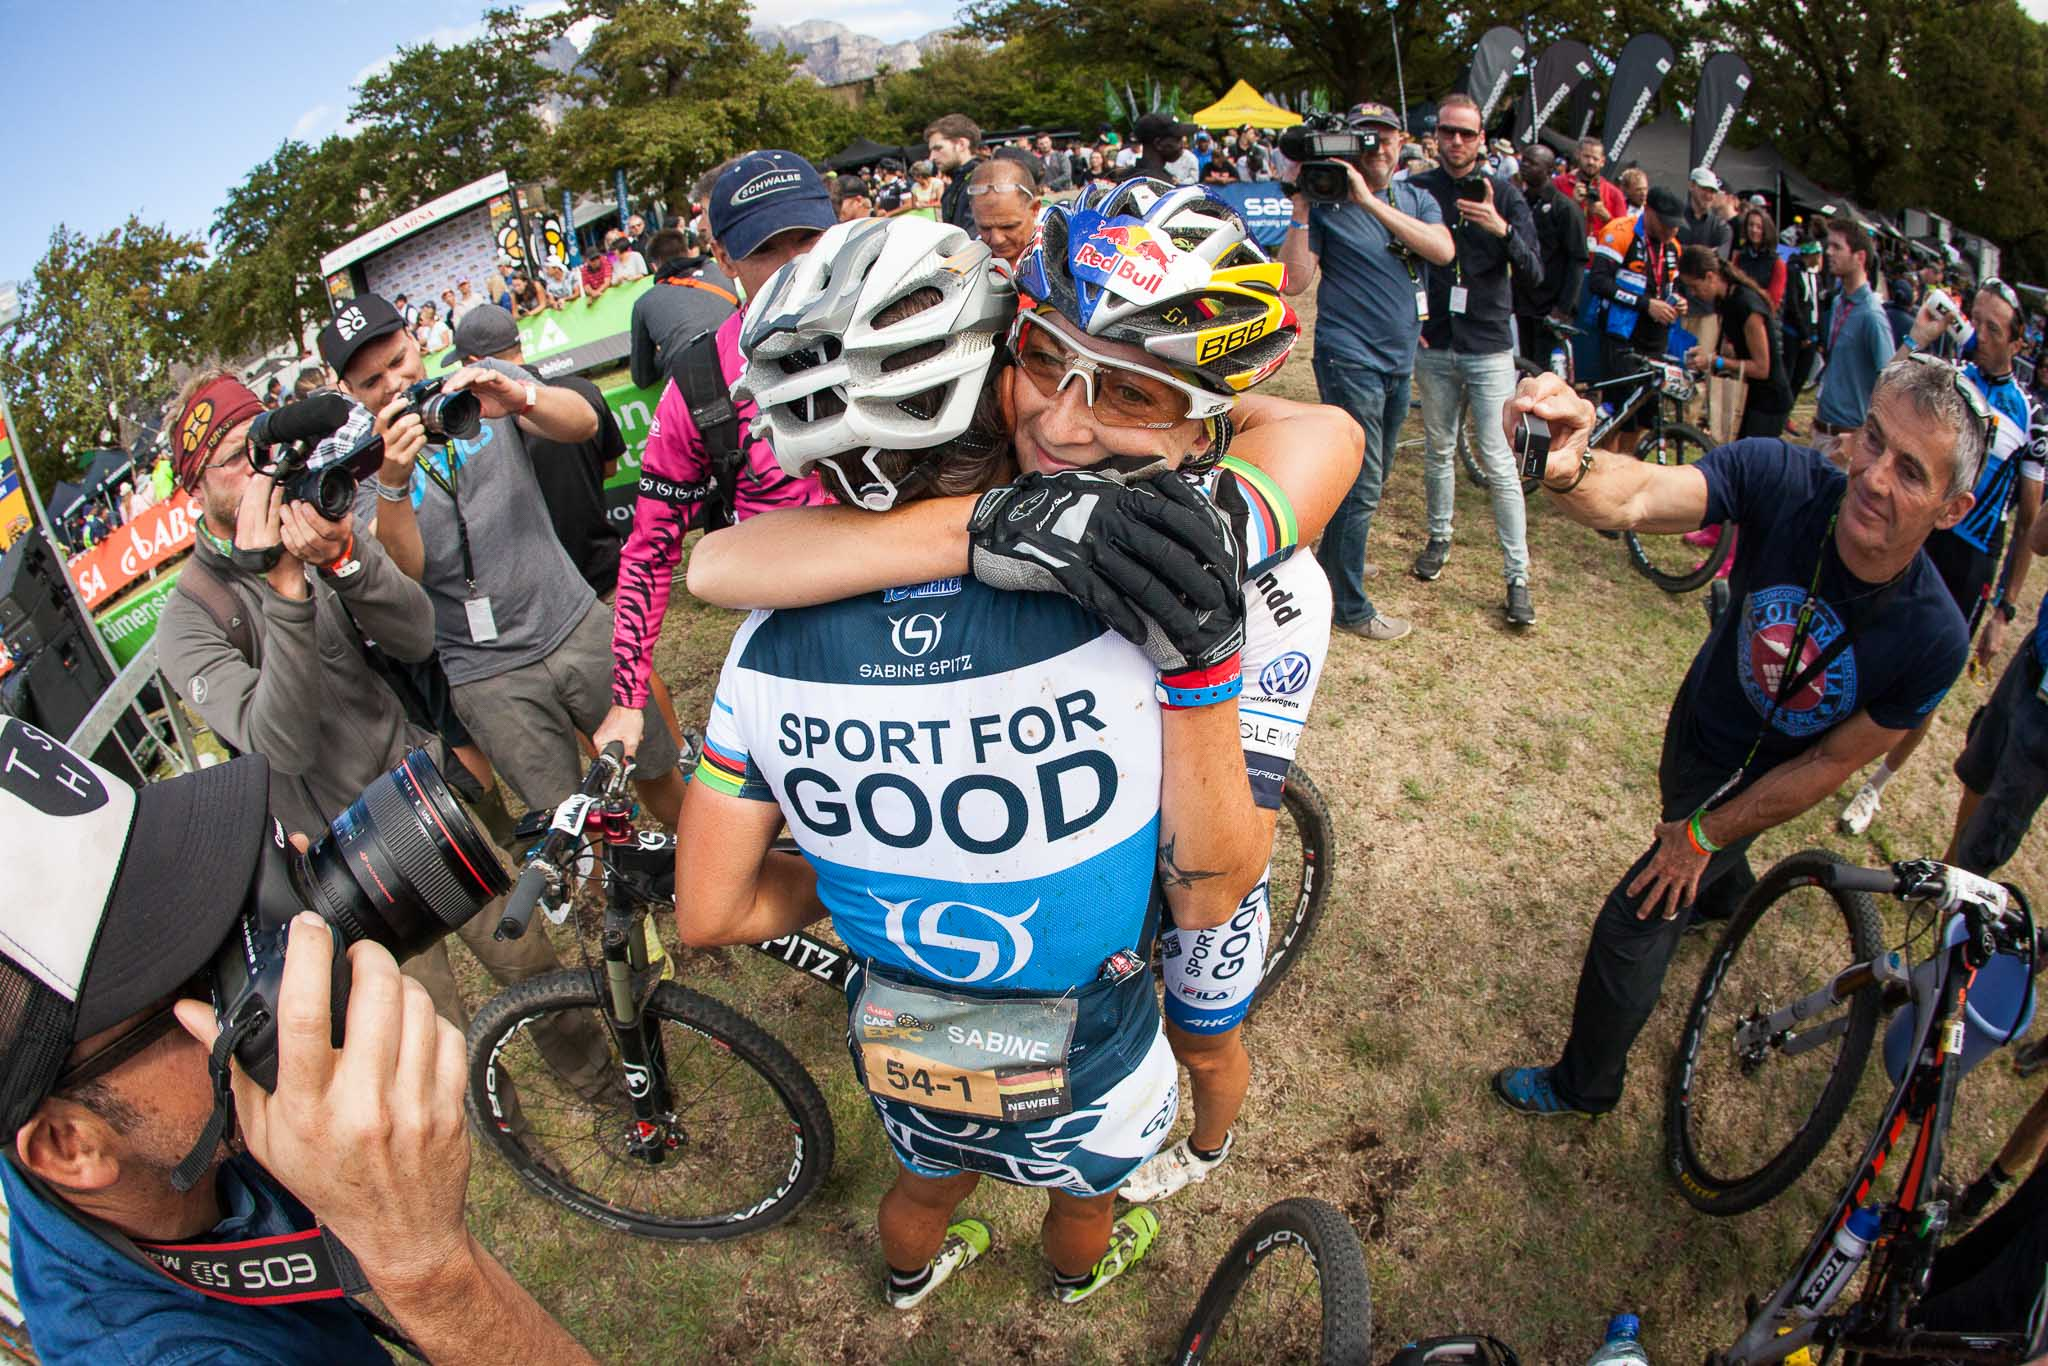 Sabine Spitz and Yana Belomoina win stage 6 of the 2016 Absa Cape Epic Mountain Bike stage race from Boschendal in Stellenbosch, South Africa on the 19th March 2015 Photo by Sam Clark/Cape Epic/SPORTZPICS PLEASE ENSURE THE APPROPRIATE CREDIT IS GIVEN TO THE PHOTOGRAPHER AND SPORTZPICS ALONG WITH THE ABSA CAPE EPIC ace2016